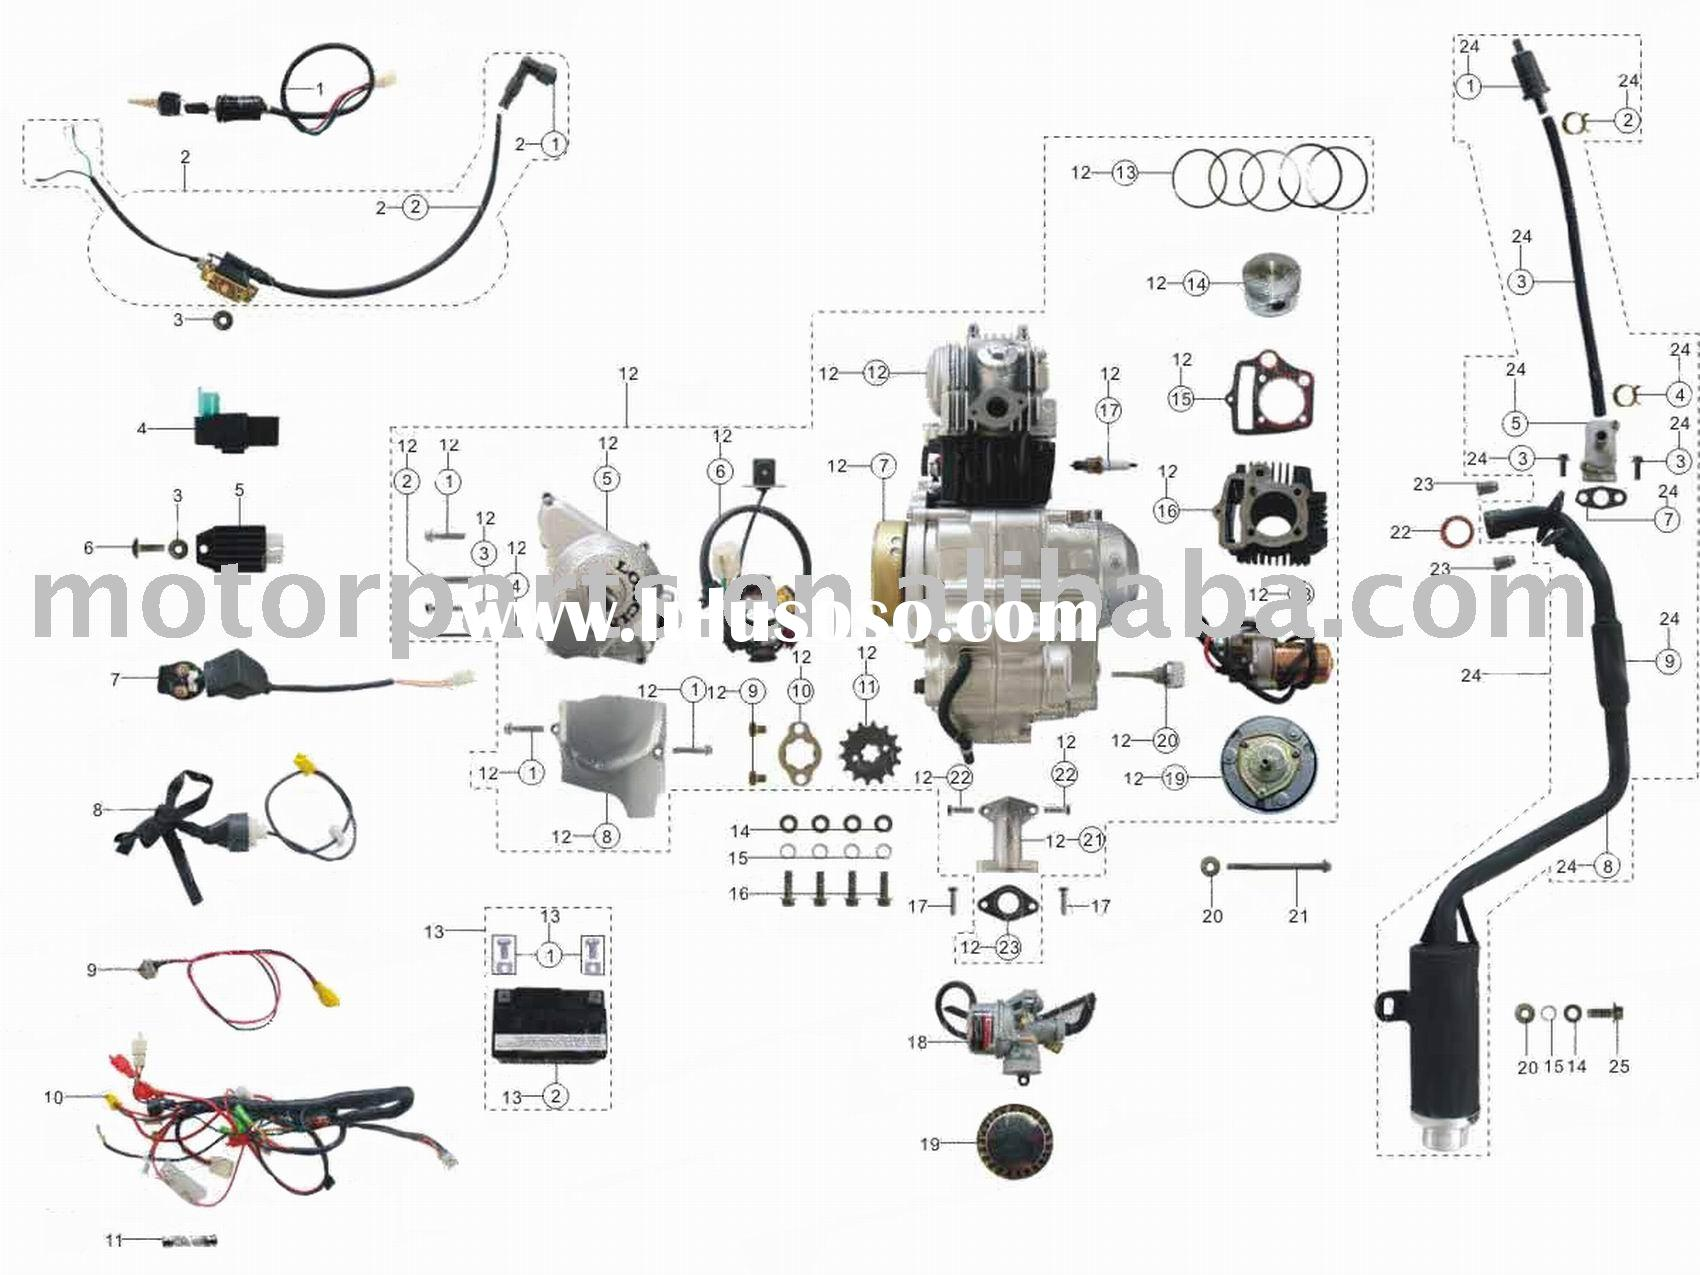 wiring diagram for a panther 110cc atv wiring diagram for. Black Bedroom Furniture Sets. Home Design Ideas